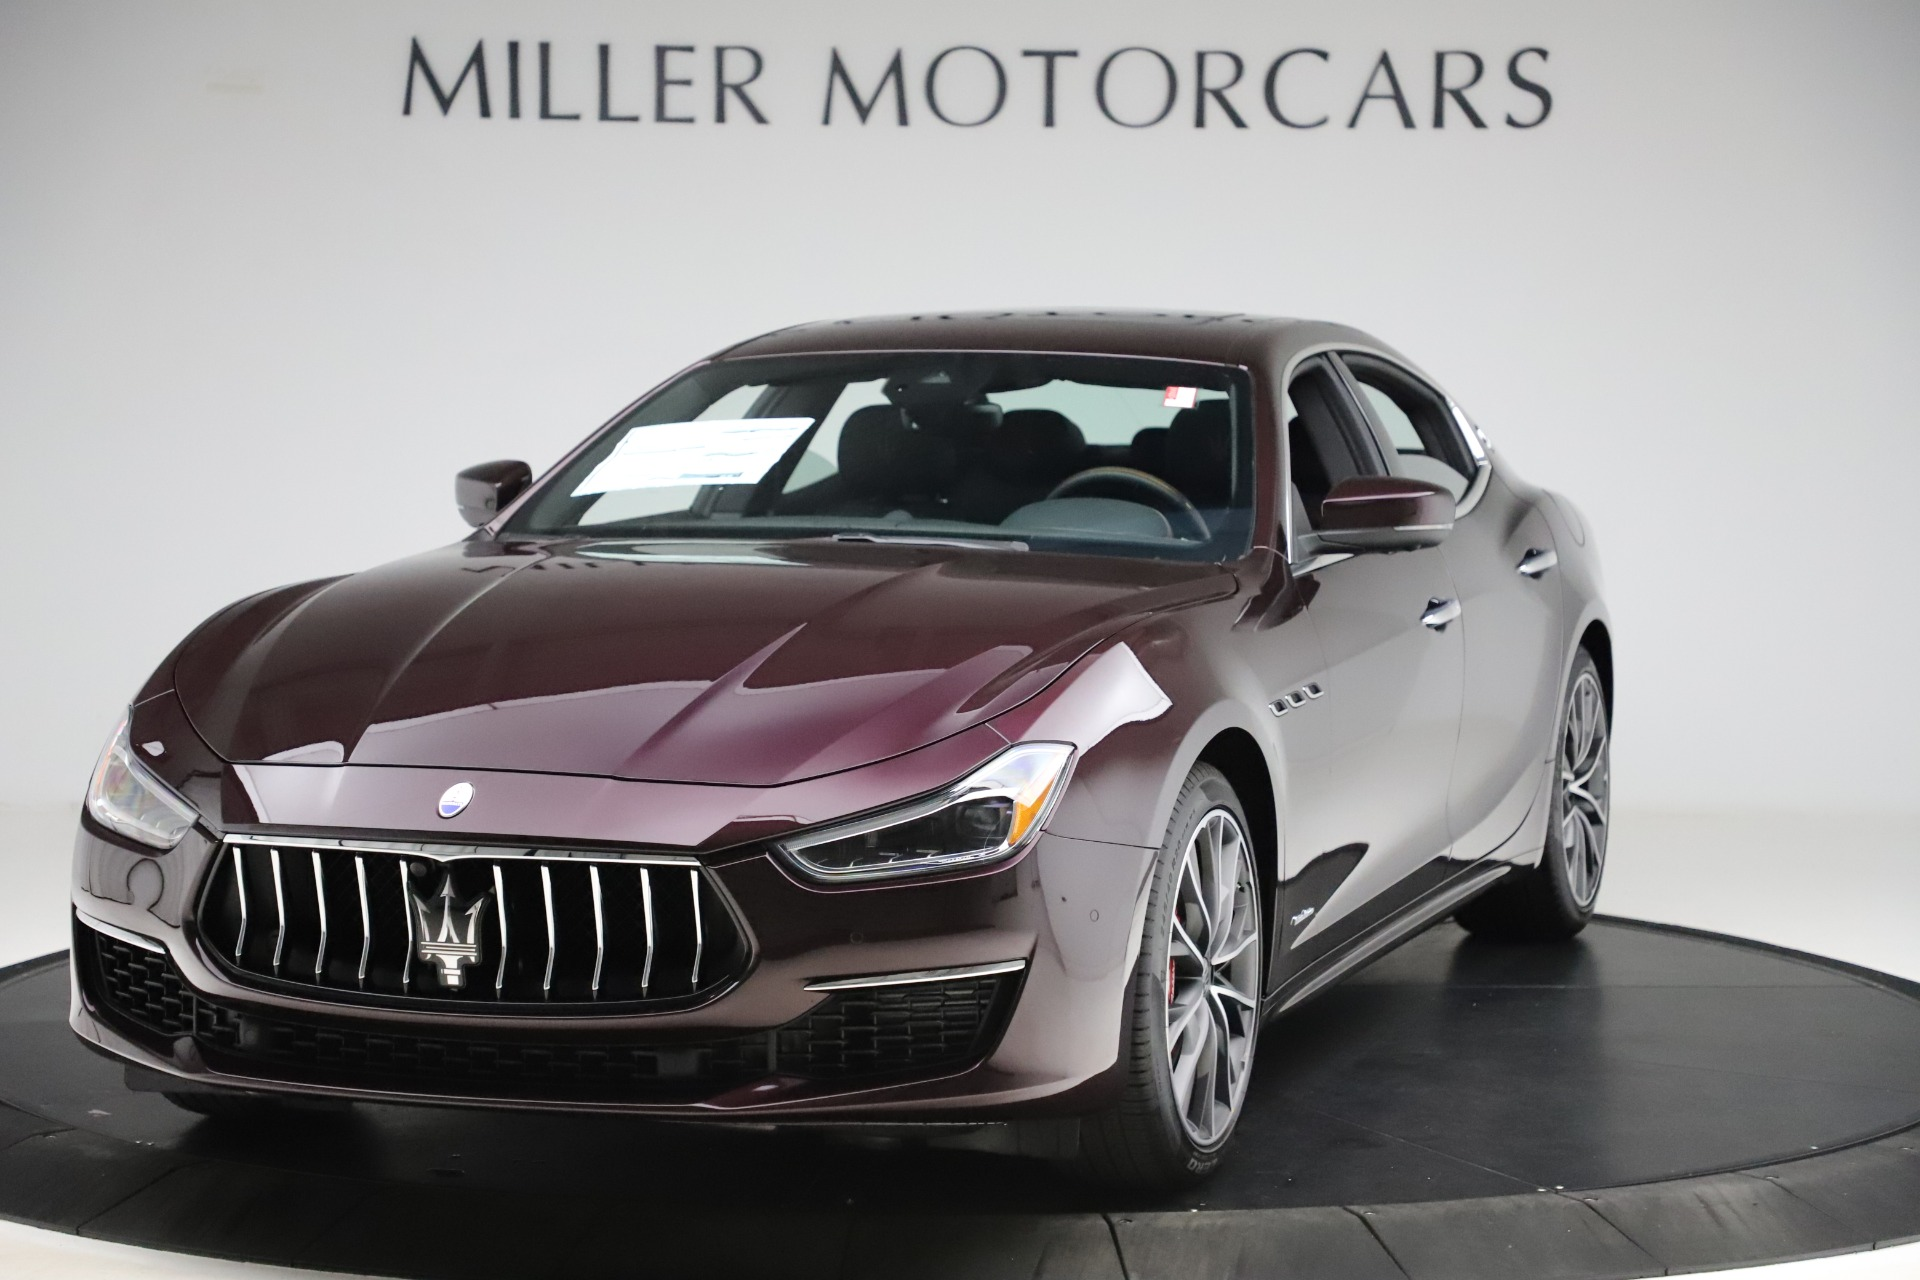 New 2020 Maserati Ghibli S Q4 GranLusso for sale $94,335 at Pagani of Greenwich in Greenwich CT 06830 1